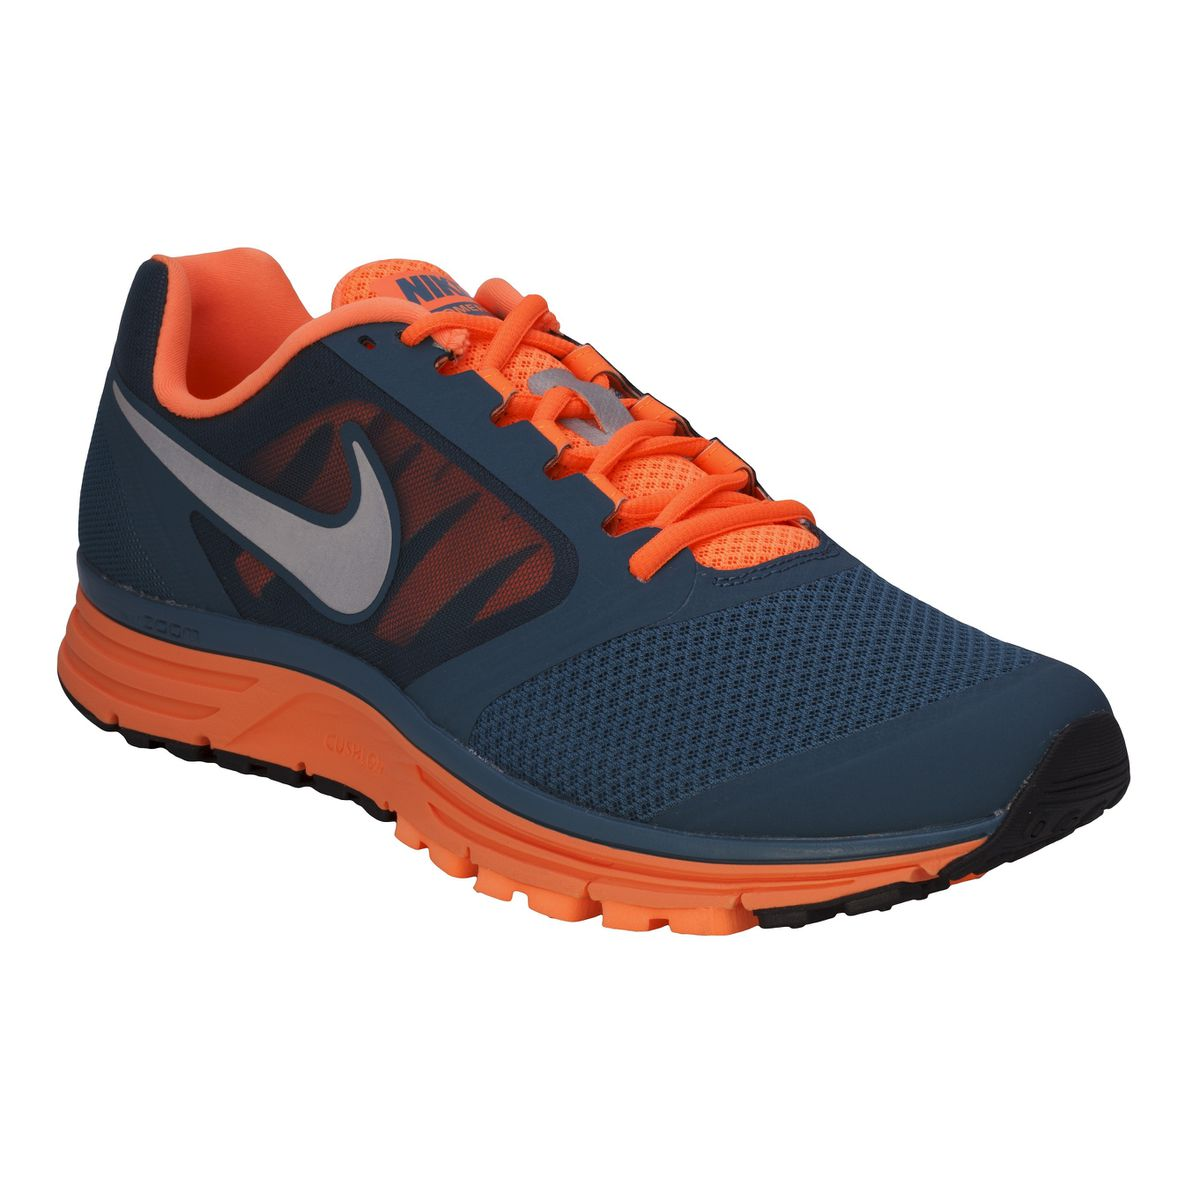 Where To Buy Nike Running Shoes In South Africa 101